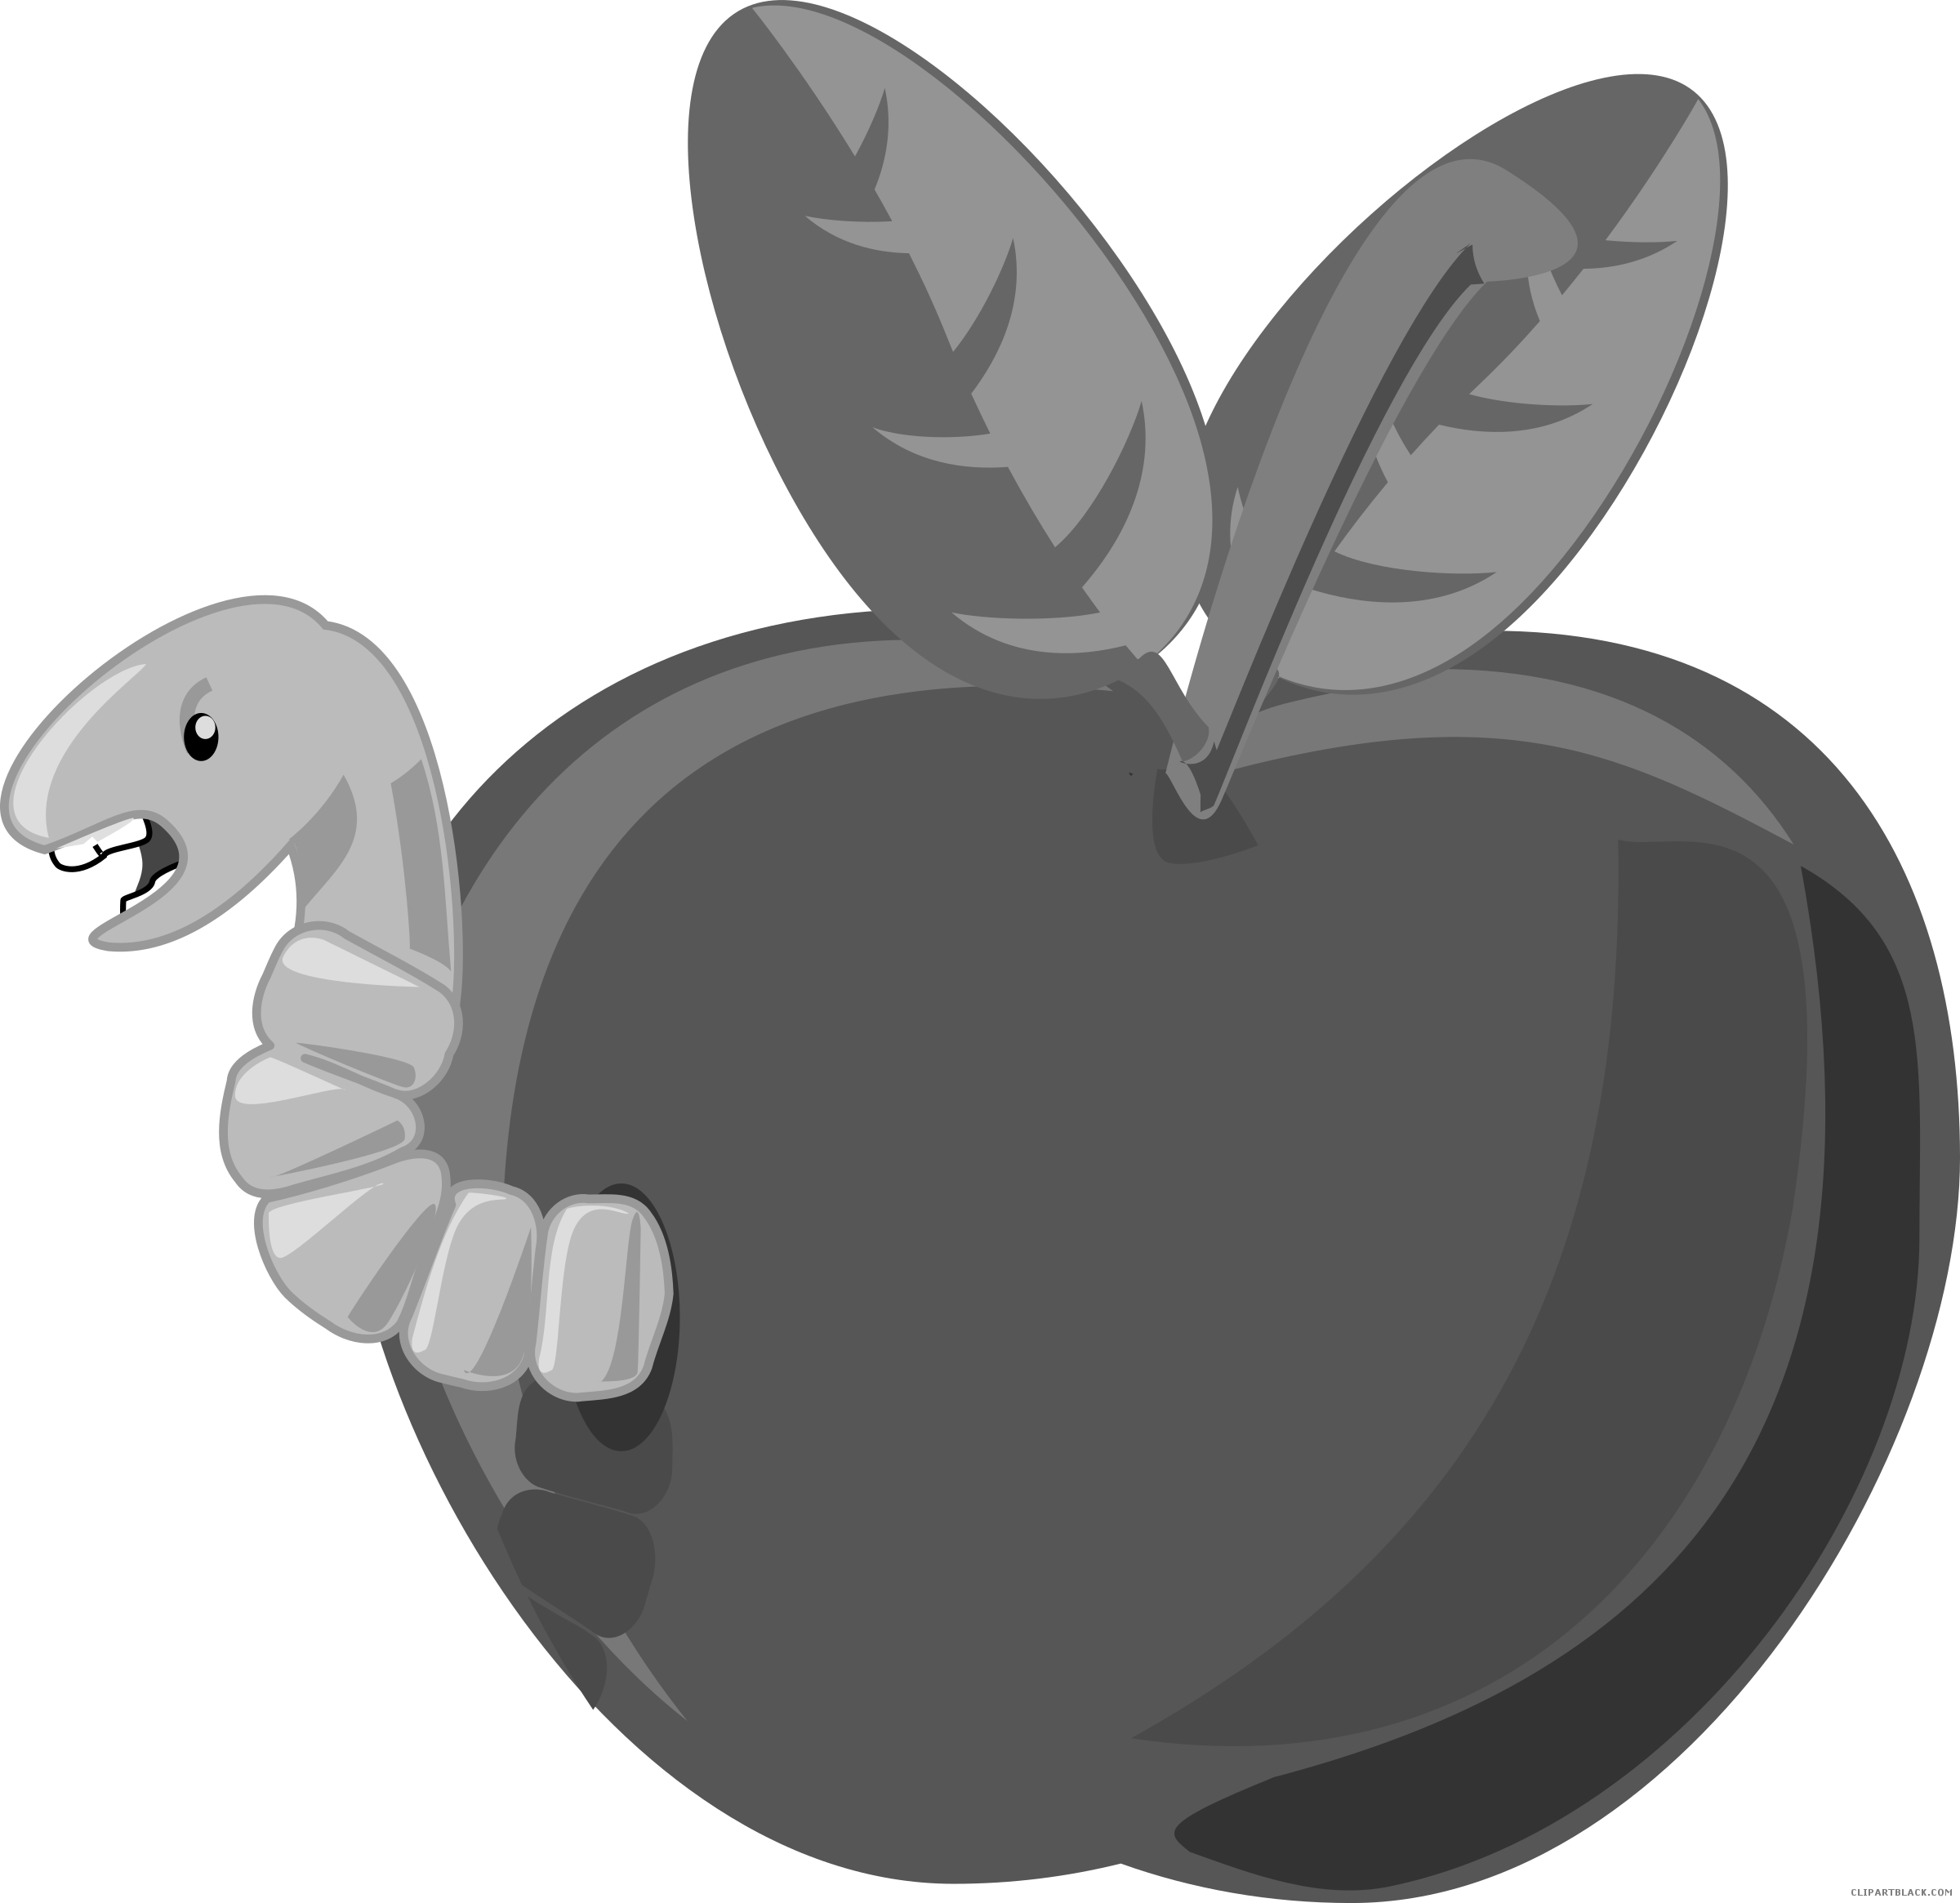 Apple in a worm black and white clipart clip art royalty free download Worm - Page 6 of 7 - ClipartBlack.com clip art royalty free download